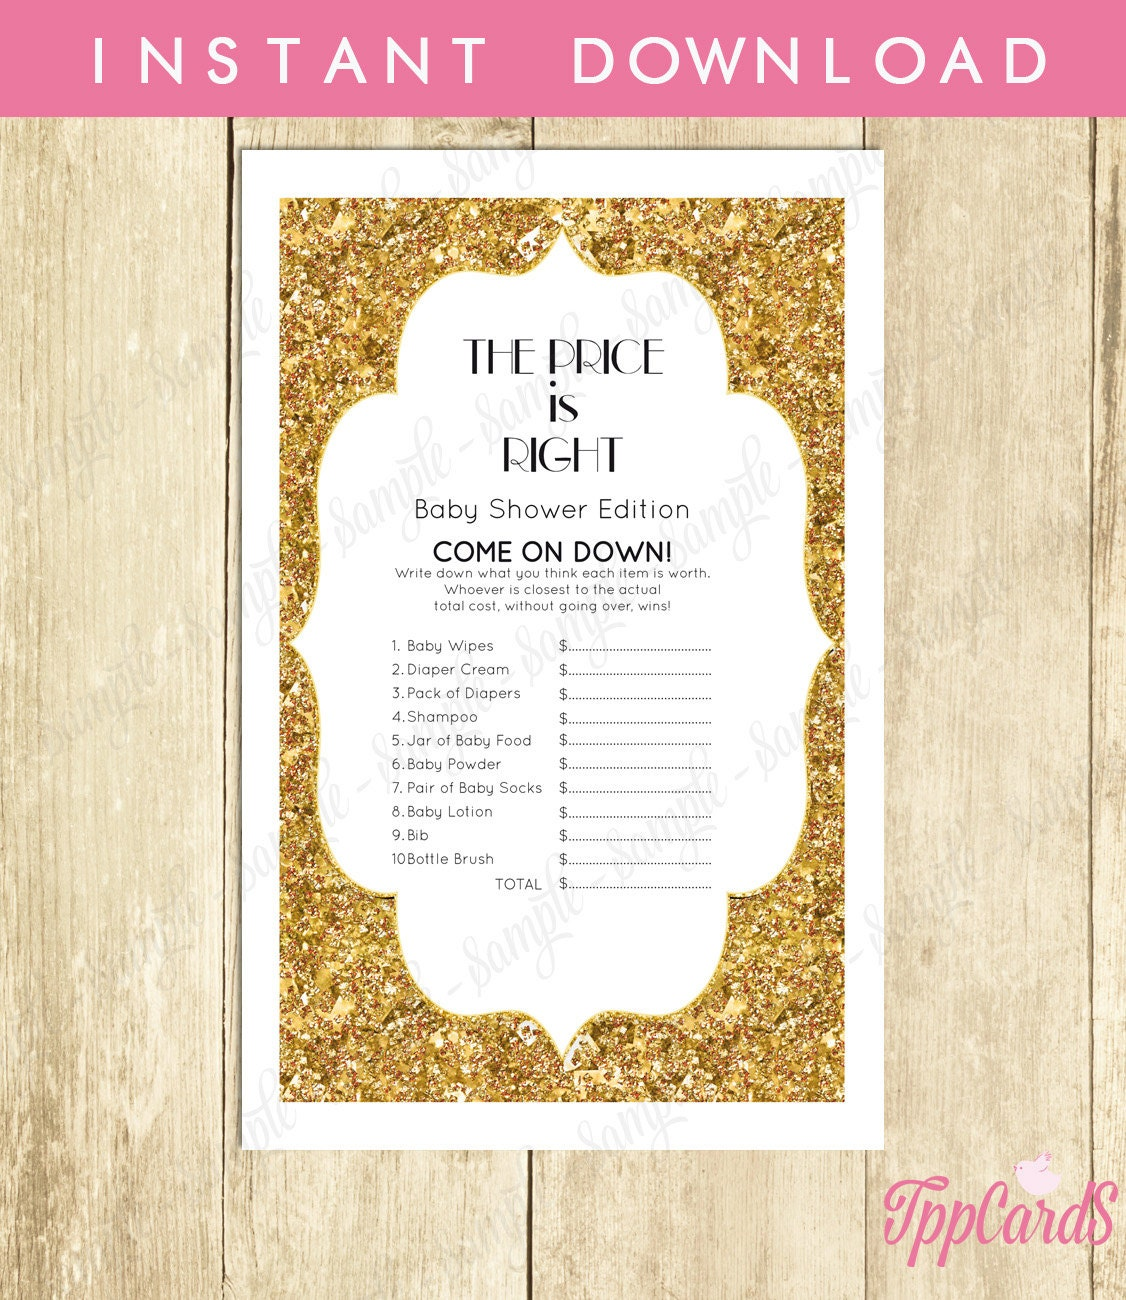 Baby Shower Games Templates | Baby Shower Games Price Is Right Tppcards